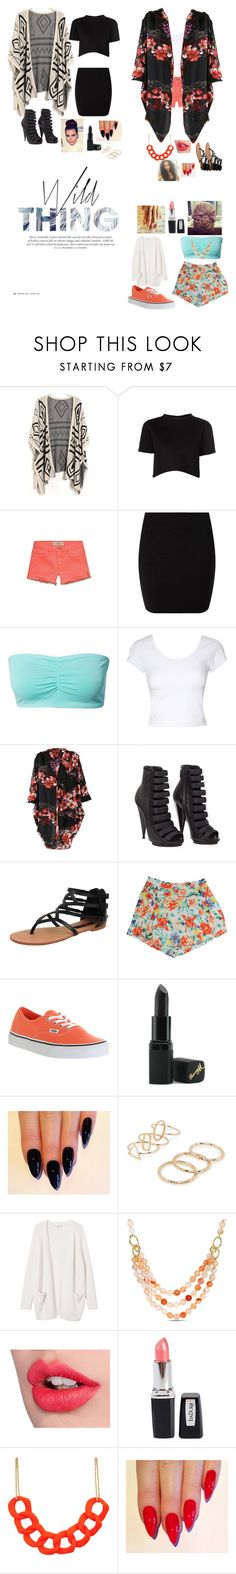 """""""WILD THANG"""" by babiegurlduce ❤ liked on Polyvore featuring Être Cécile, Abercrombie & Fitch, ONLY, Jane Norman, Fever Fish, Gucci, Dollhouse, MINKPINK, Vans and Barry M"""